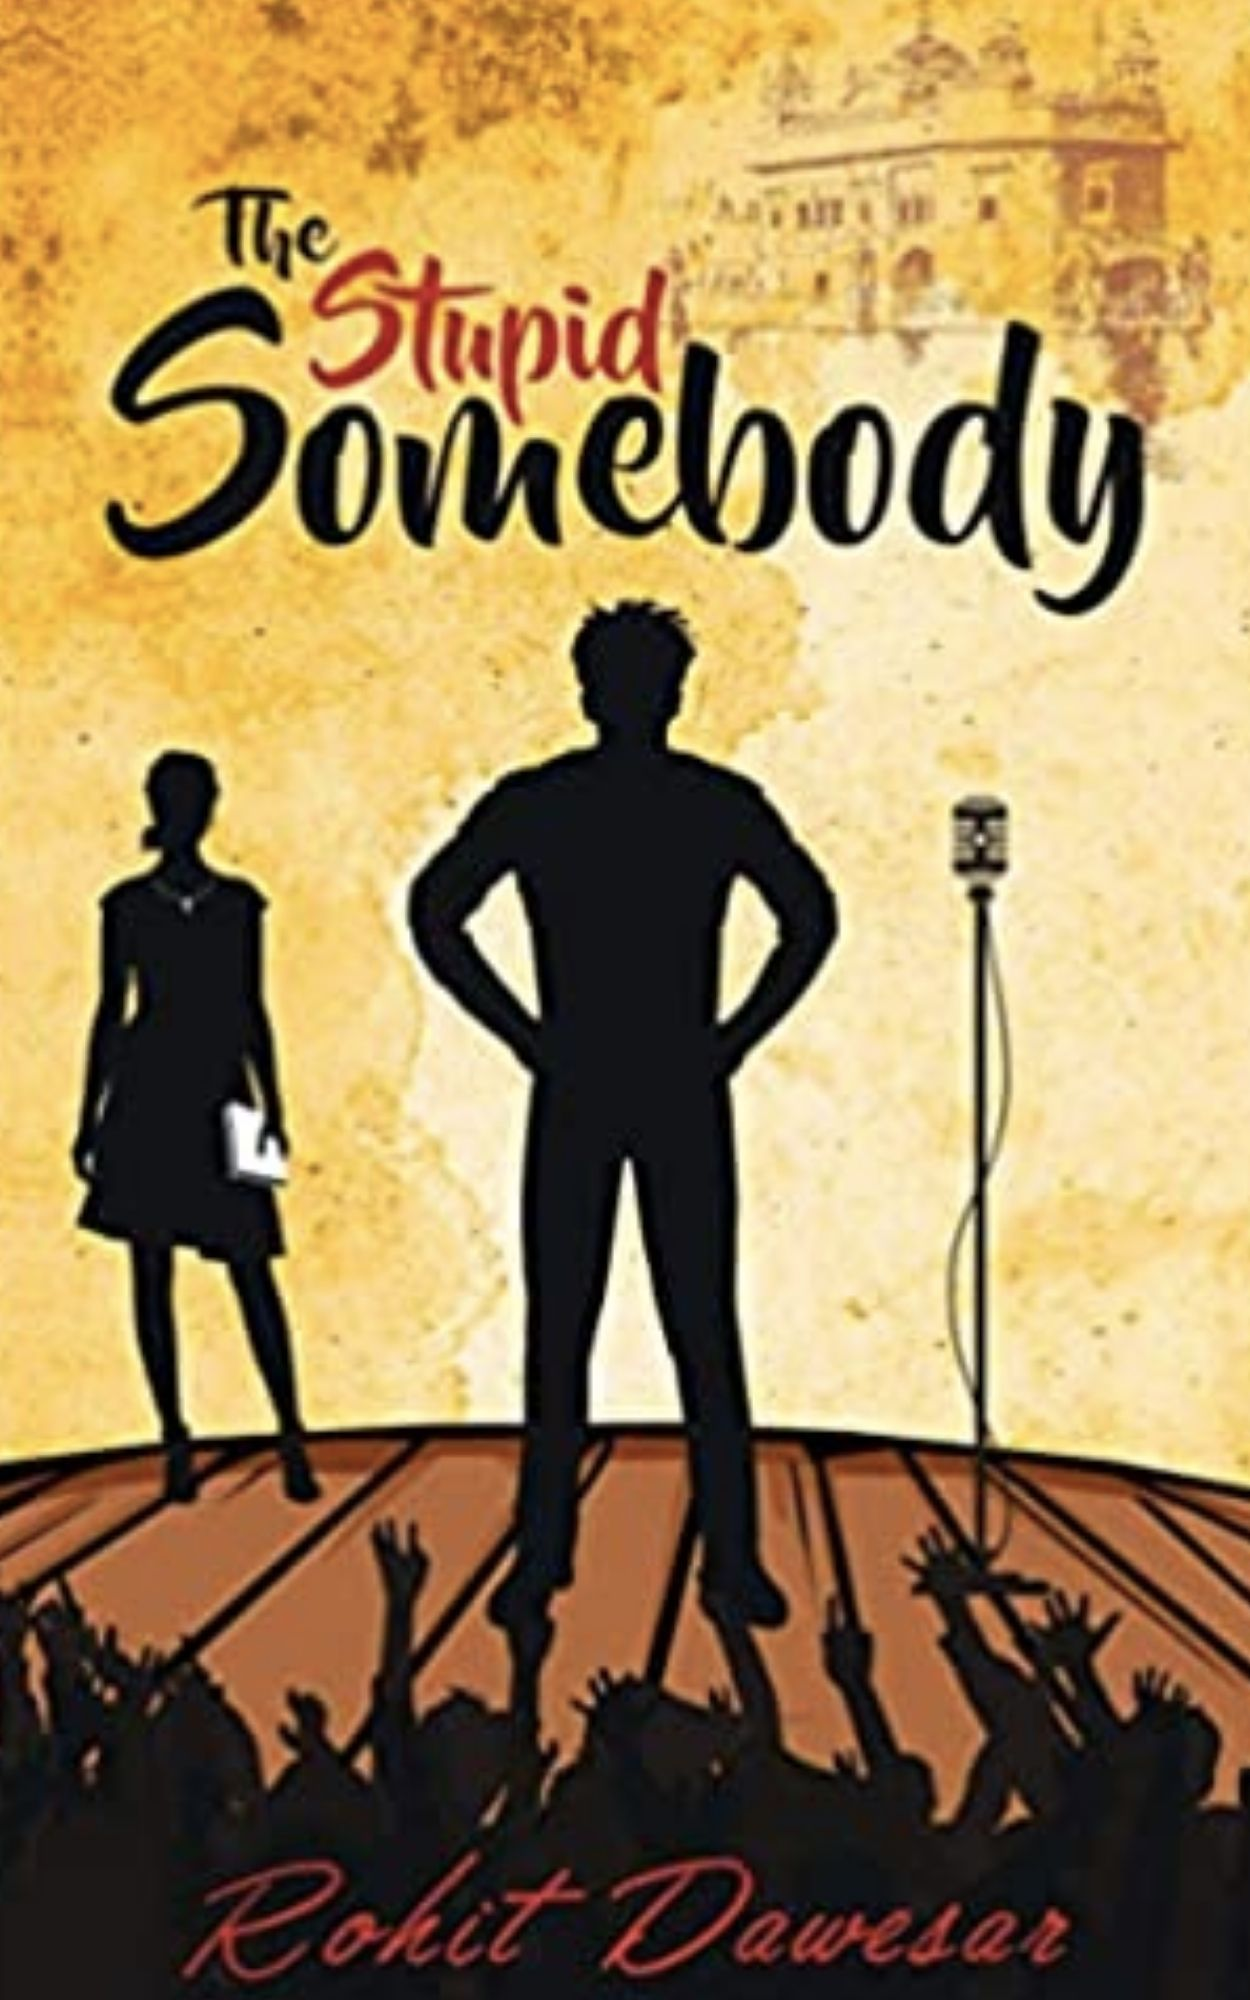 The Studpid Somebody Book by Rohit Dewasar